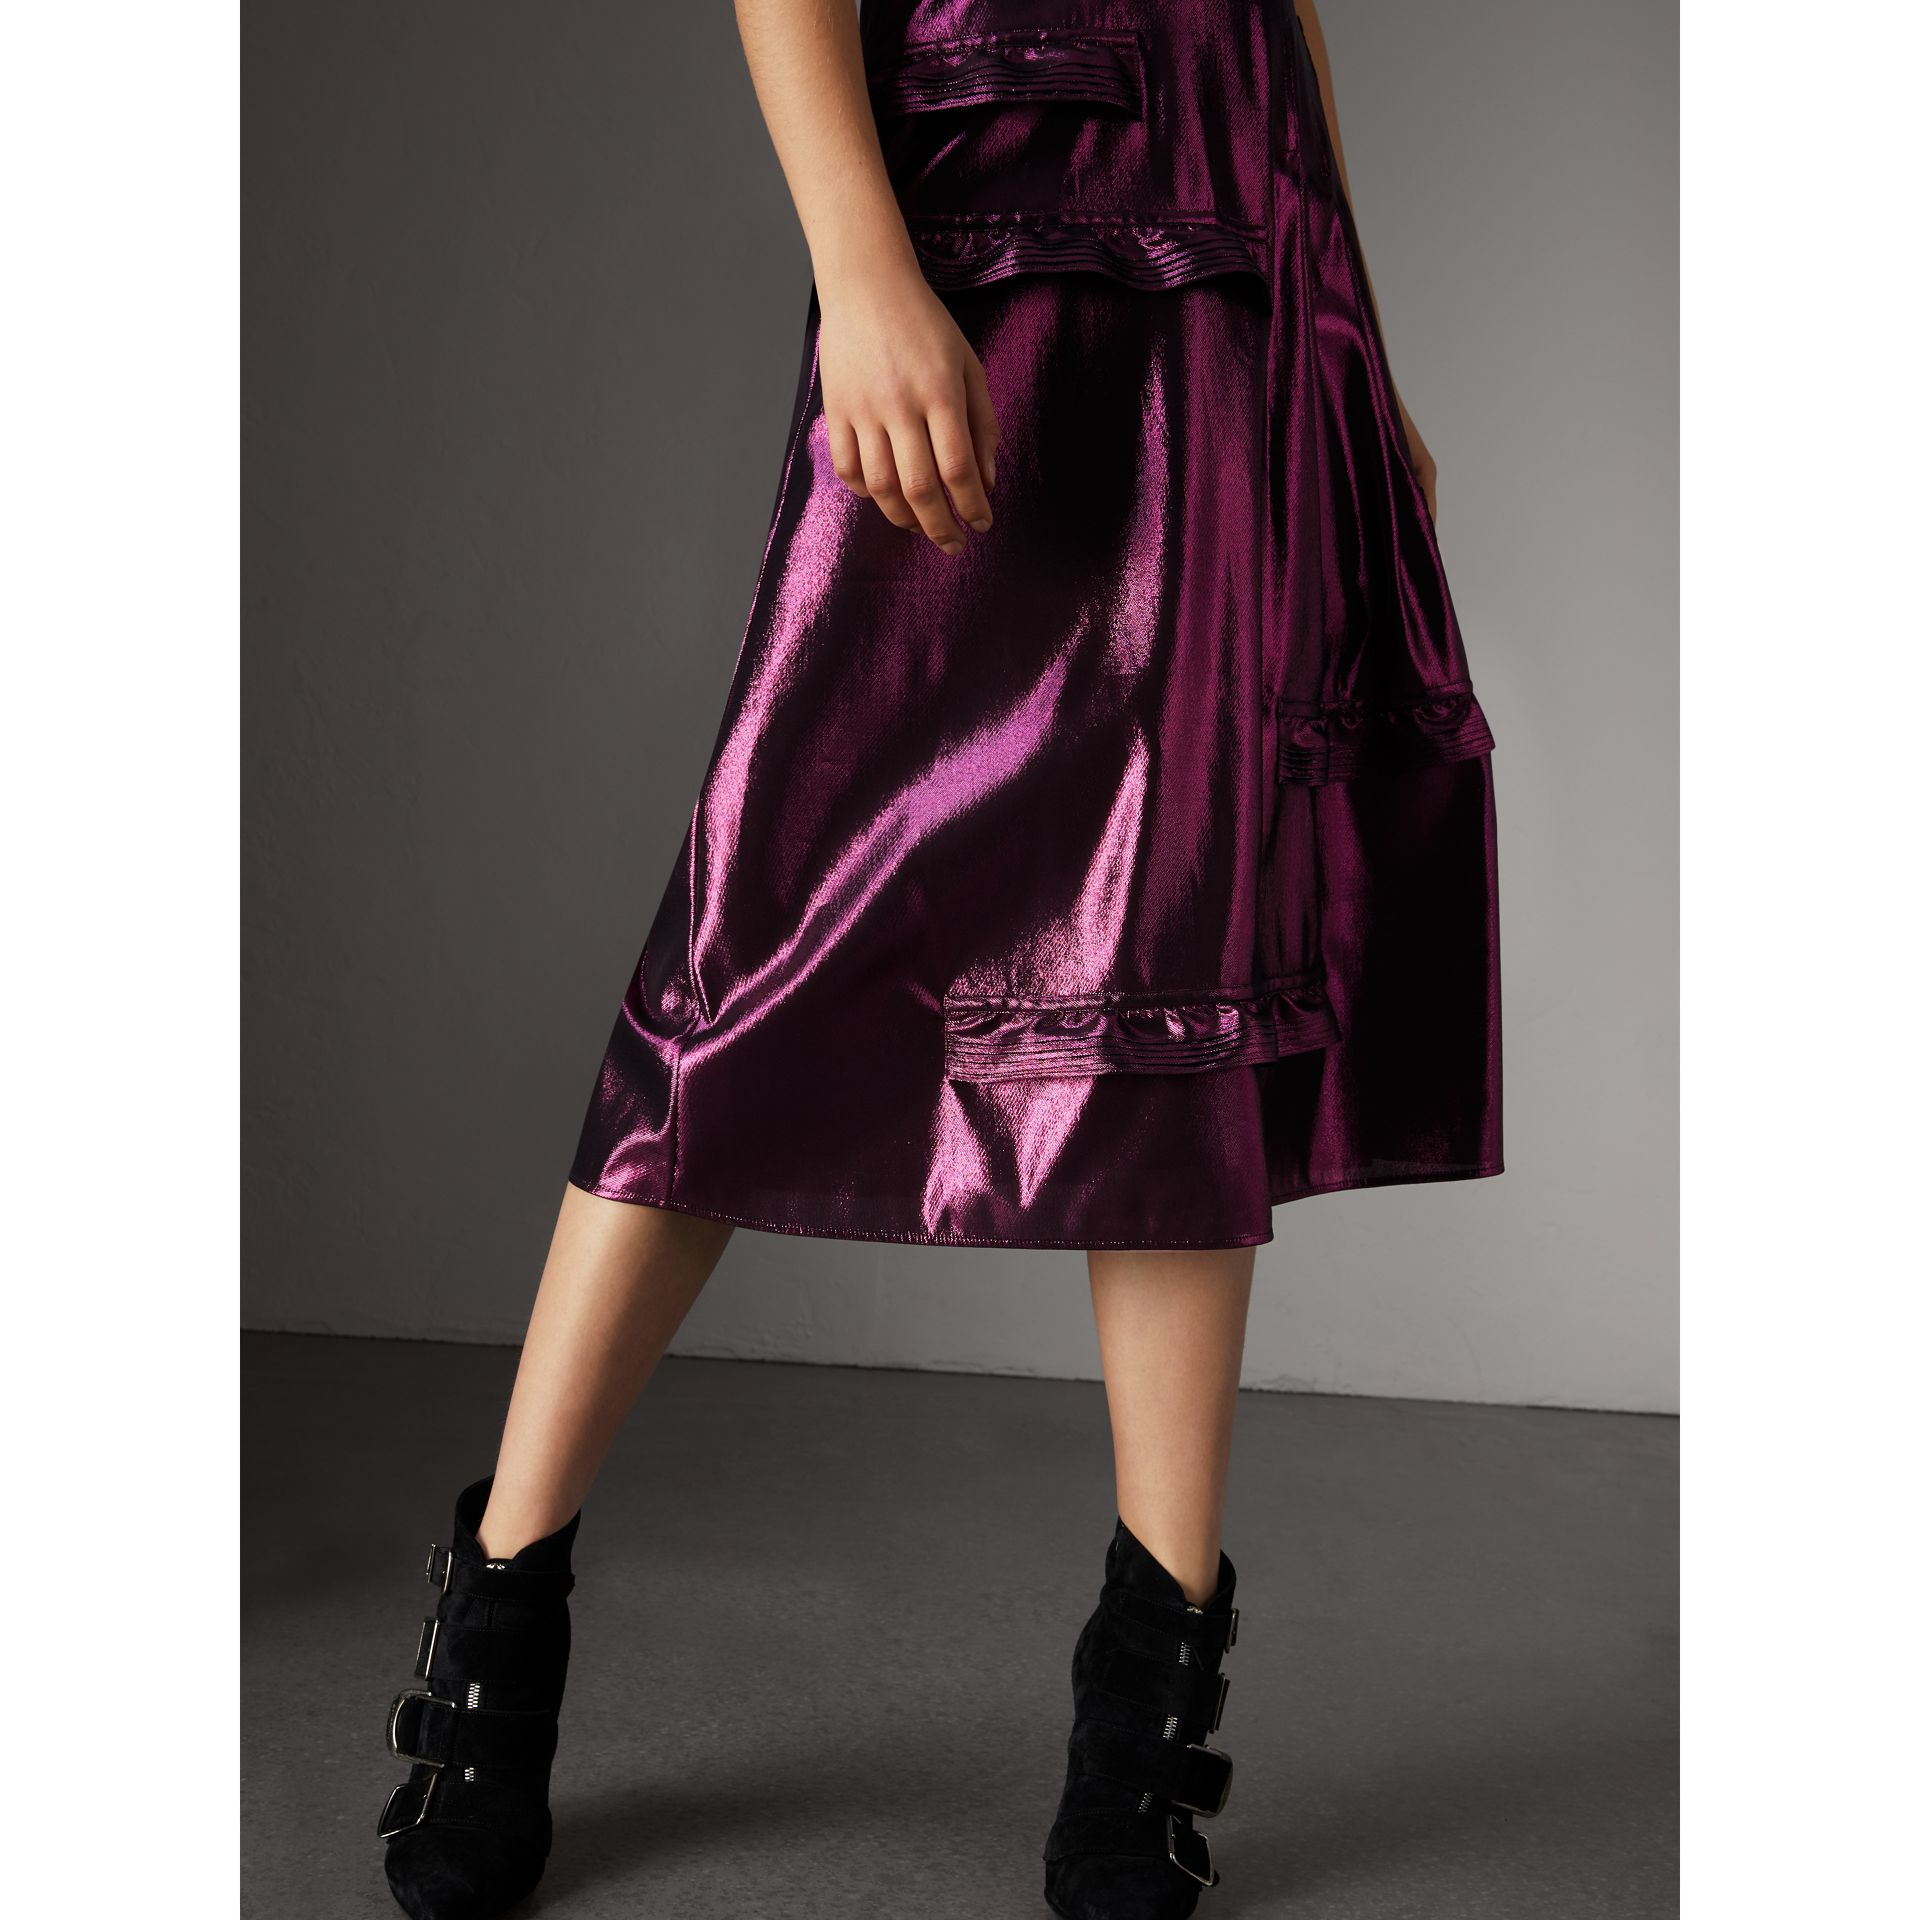 Short-sleeve Ruffle Detail Lamé Dress – Online Exclusive in Bright Fuchsia - Women | Burberry - gallery image 1